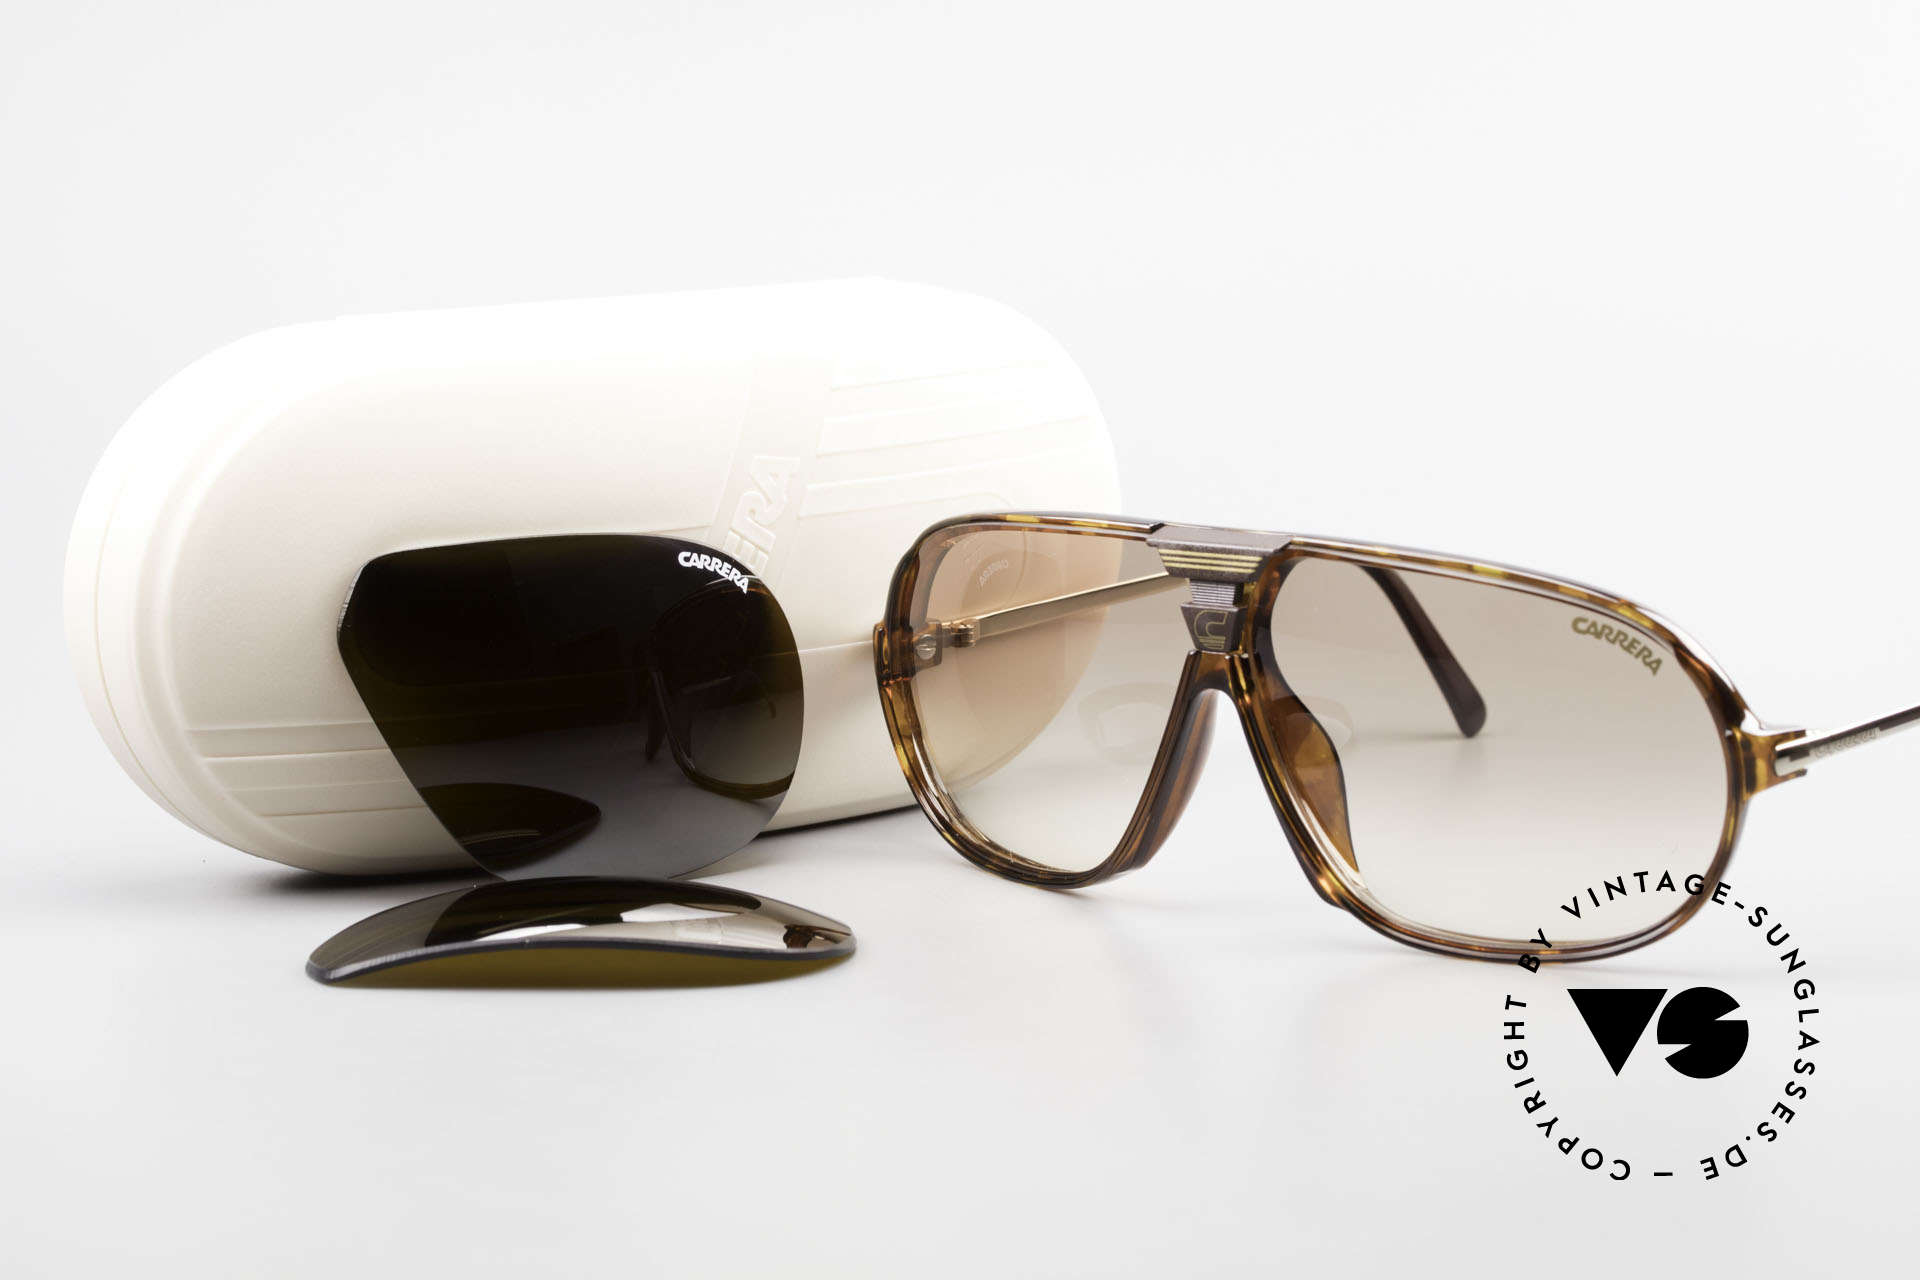 Carrera 5416 80's Shades Additional Lenses, NO RETRO sunglasses; a rare vintage ORIGINAL, Made for Men